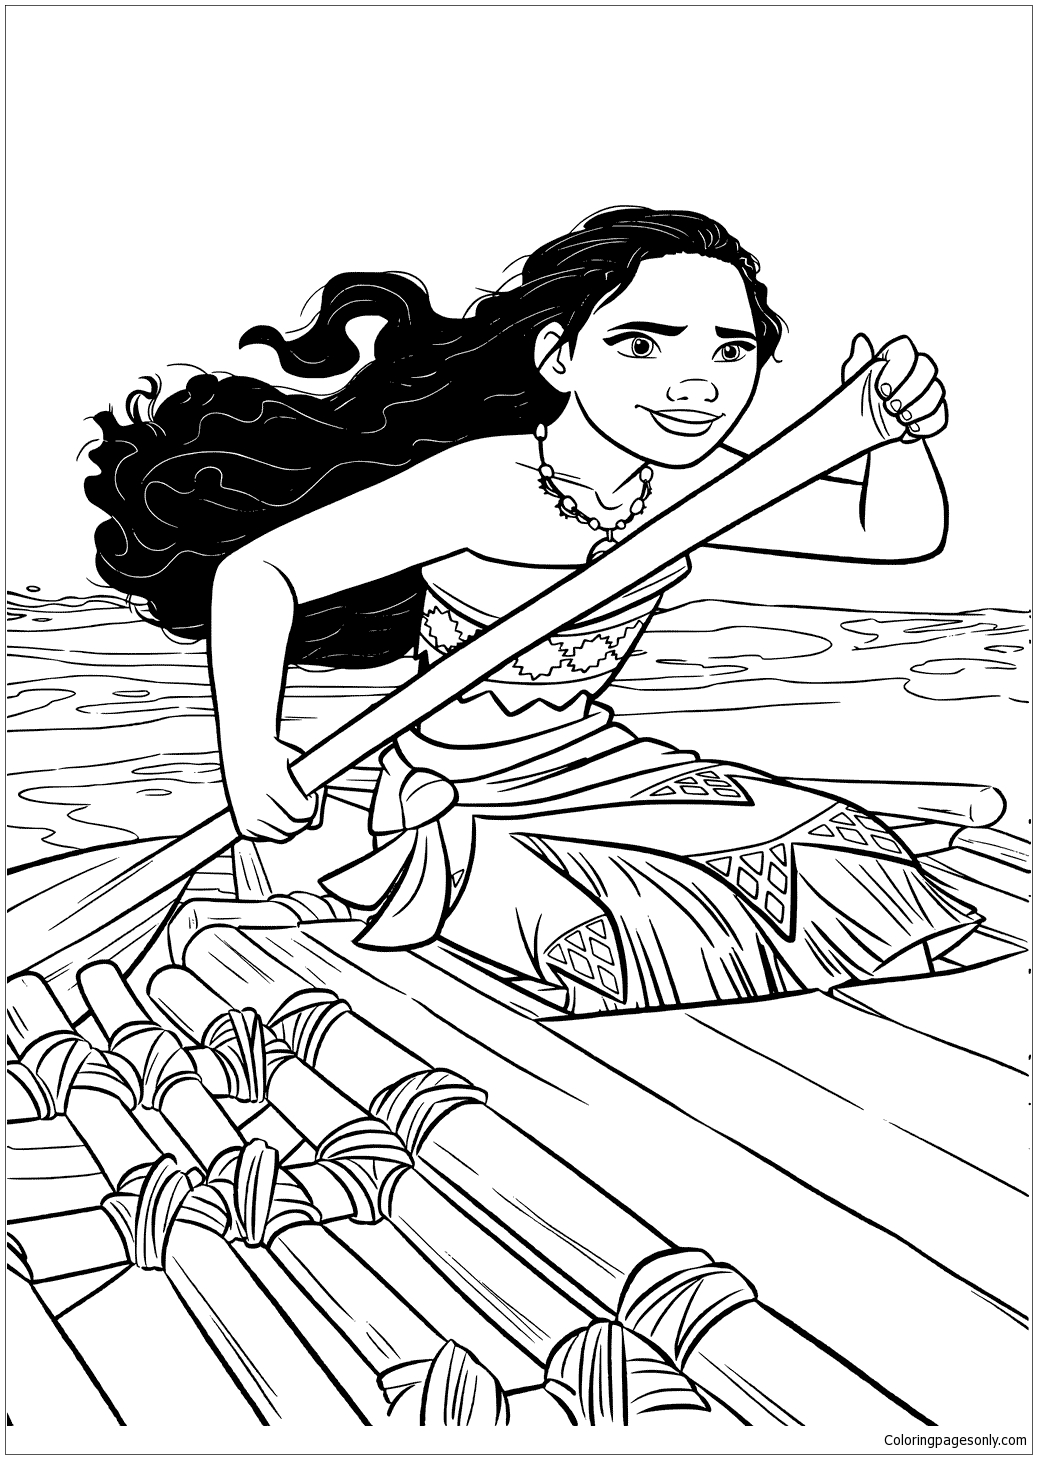 Moana In A Boat Coloring Page Free Coloring Pages Online